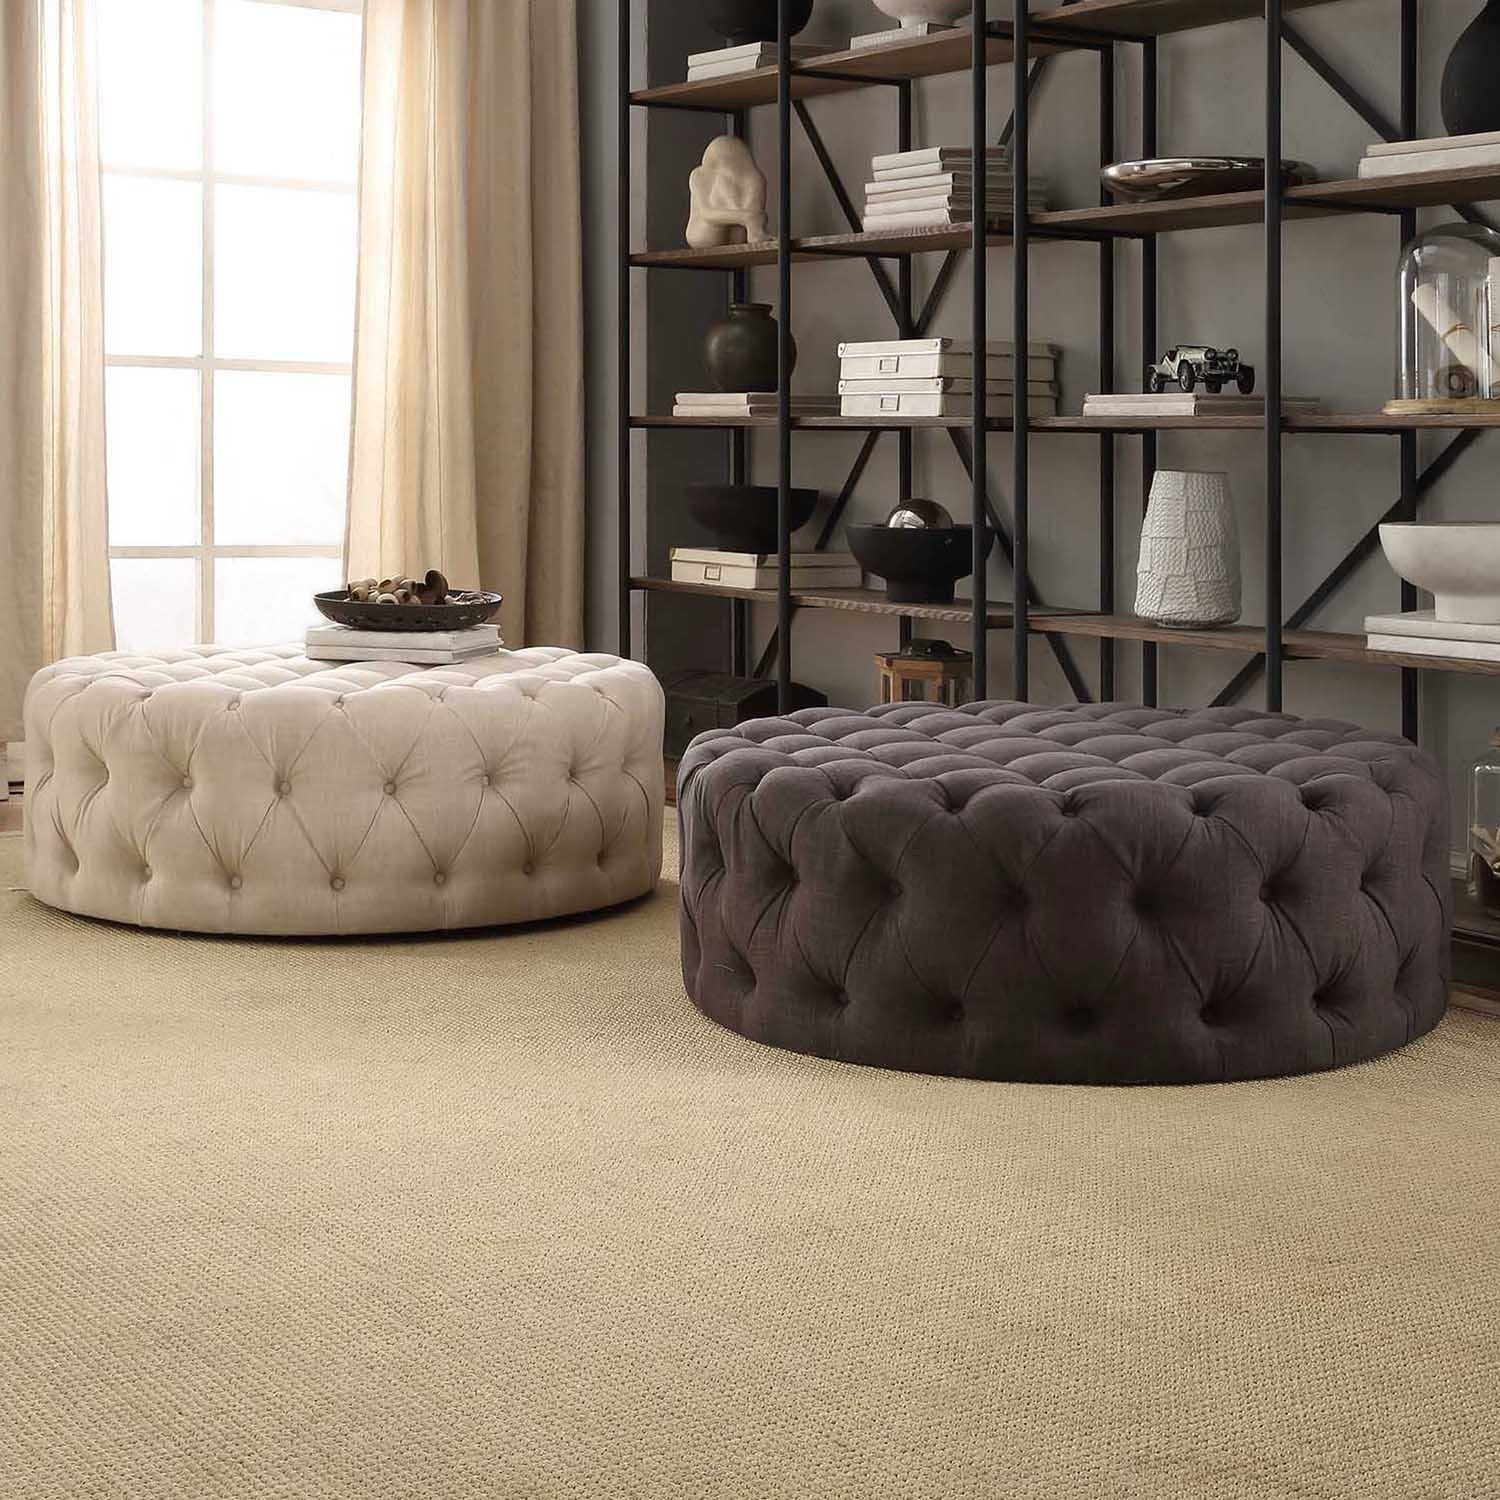 Add an air of pure luxury with this beautifully designed Knightsbridge cocktail  ottoman from iNSPIRE Q Artisan. Sumptuous linen uphostery with tufted ...